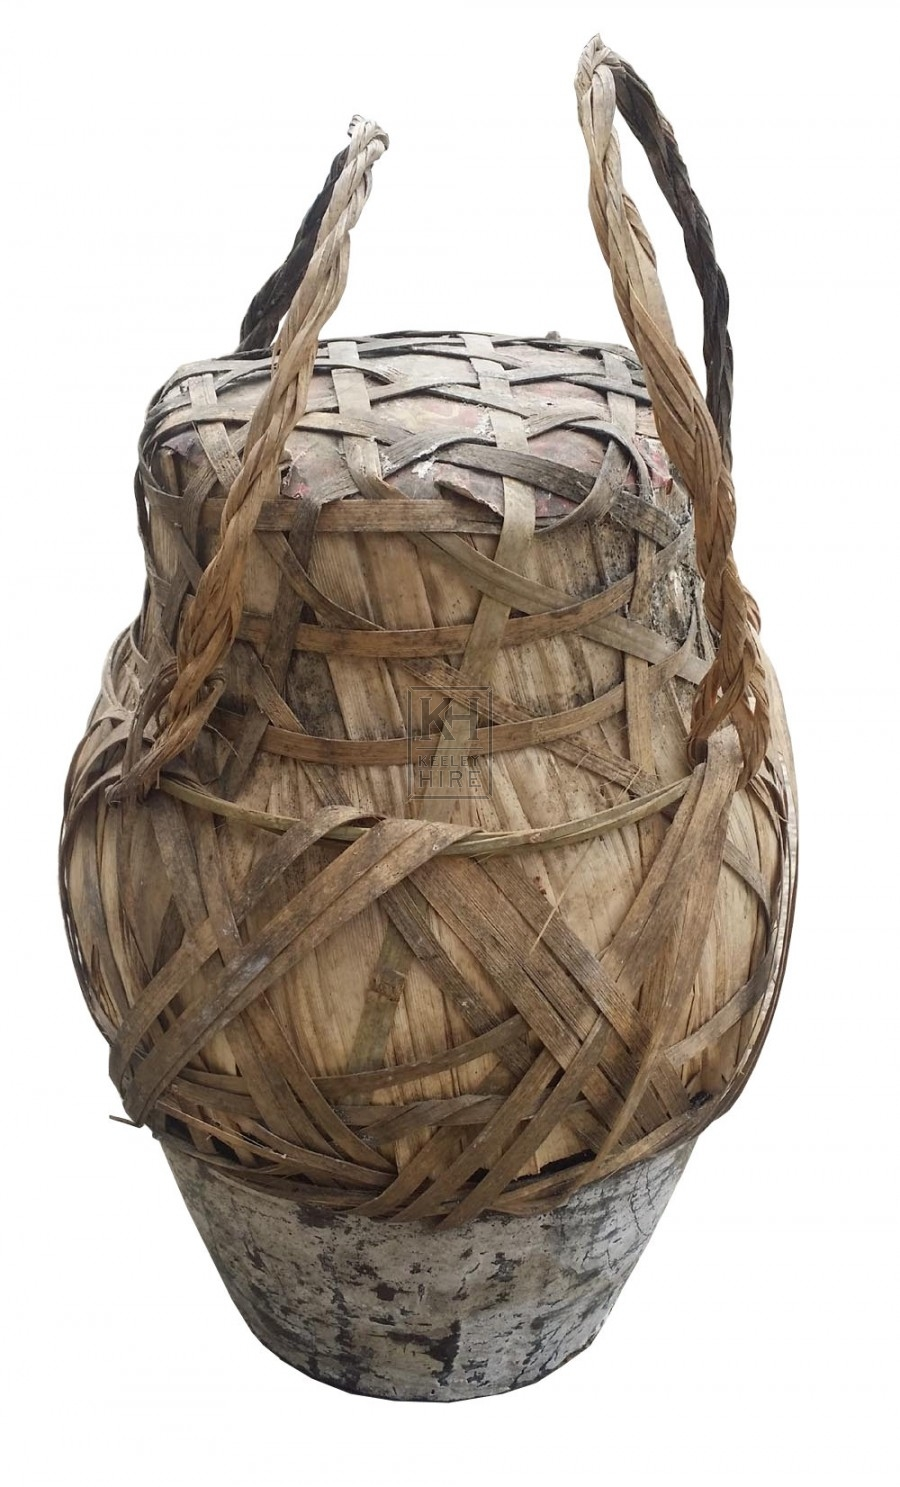 Woven pots in reed